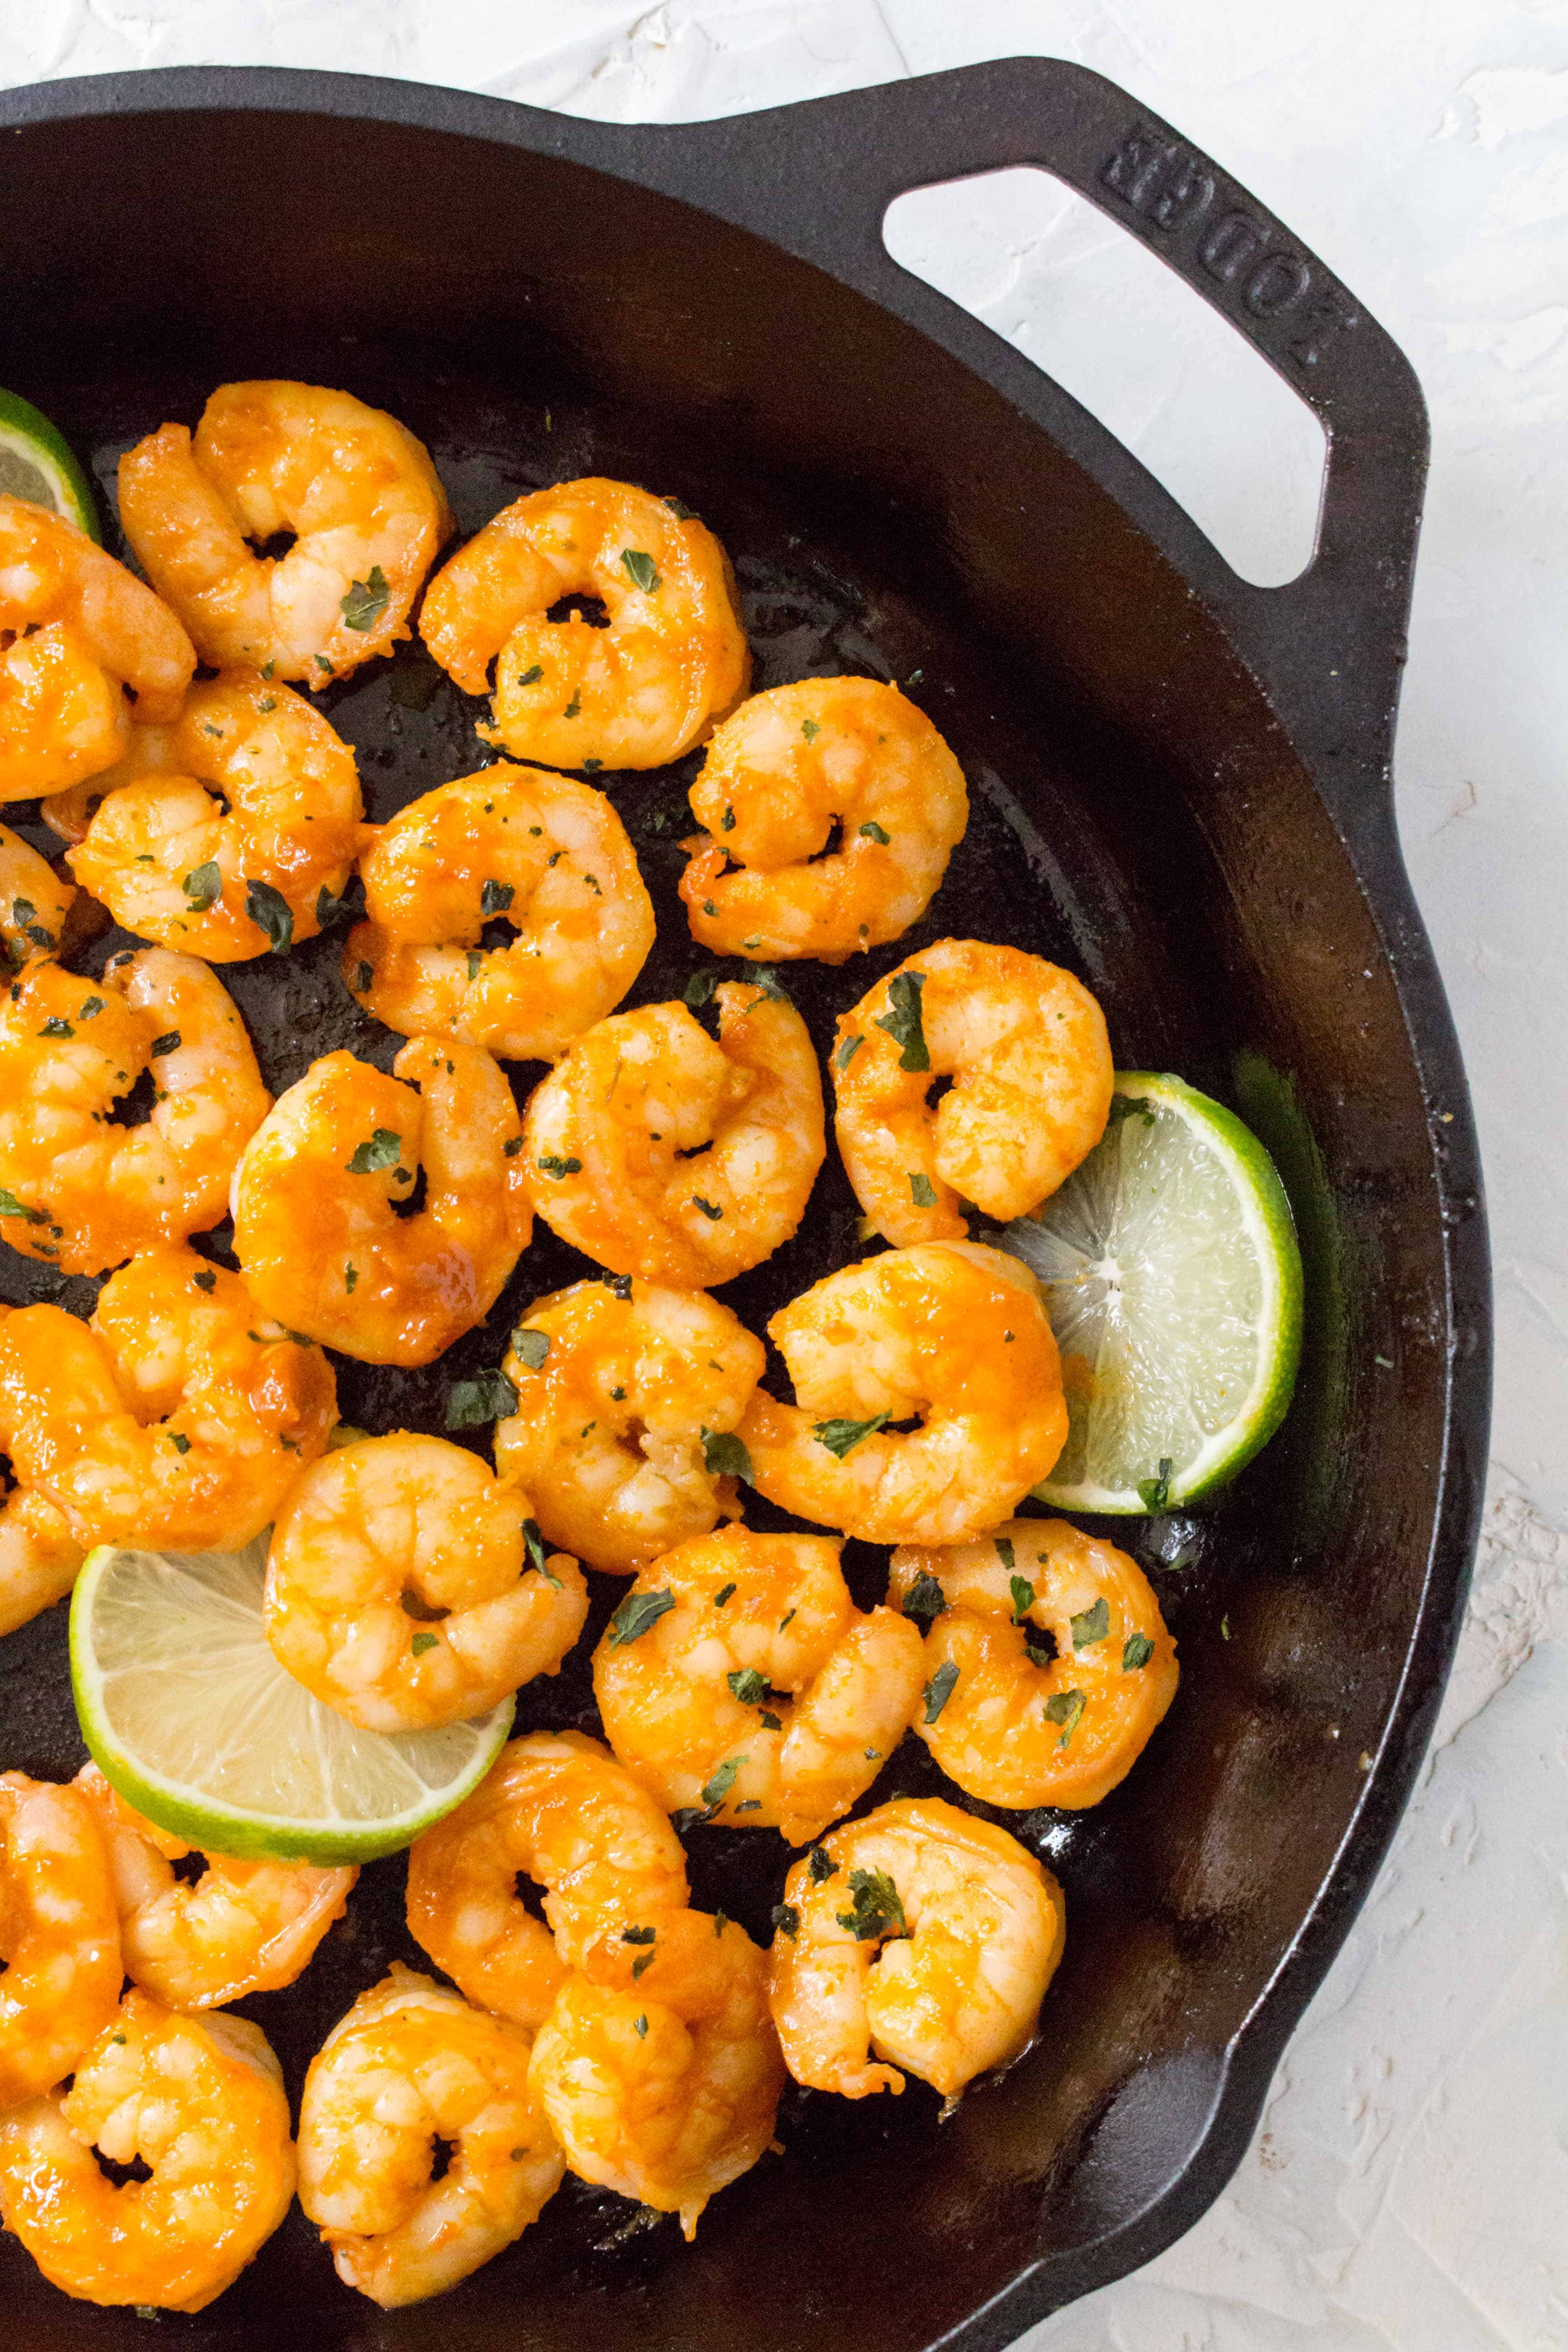 This Sriracha Lime Shrimp is perfectly pan seared, spicy, and full of flavour. Make this for your dinner or meal prep in under 20 minutes.